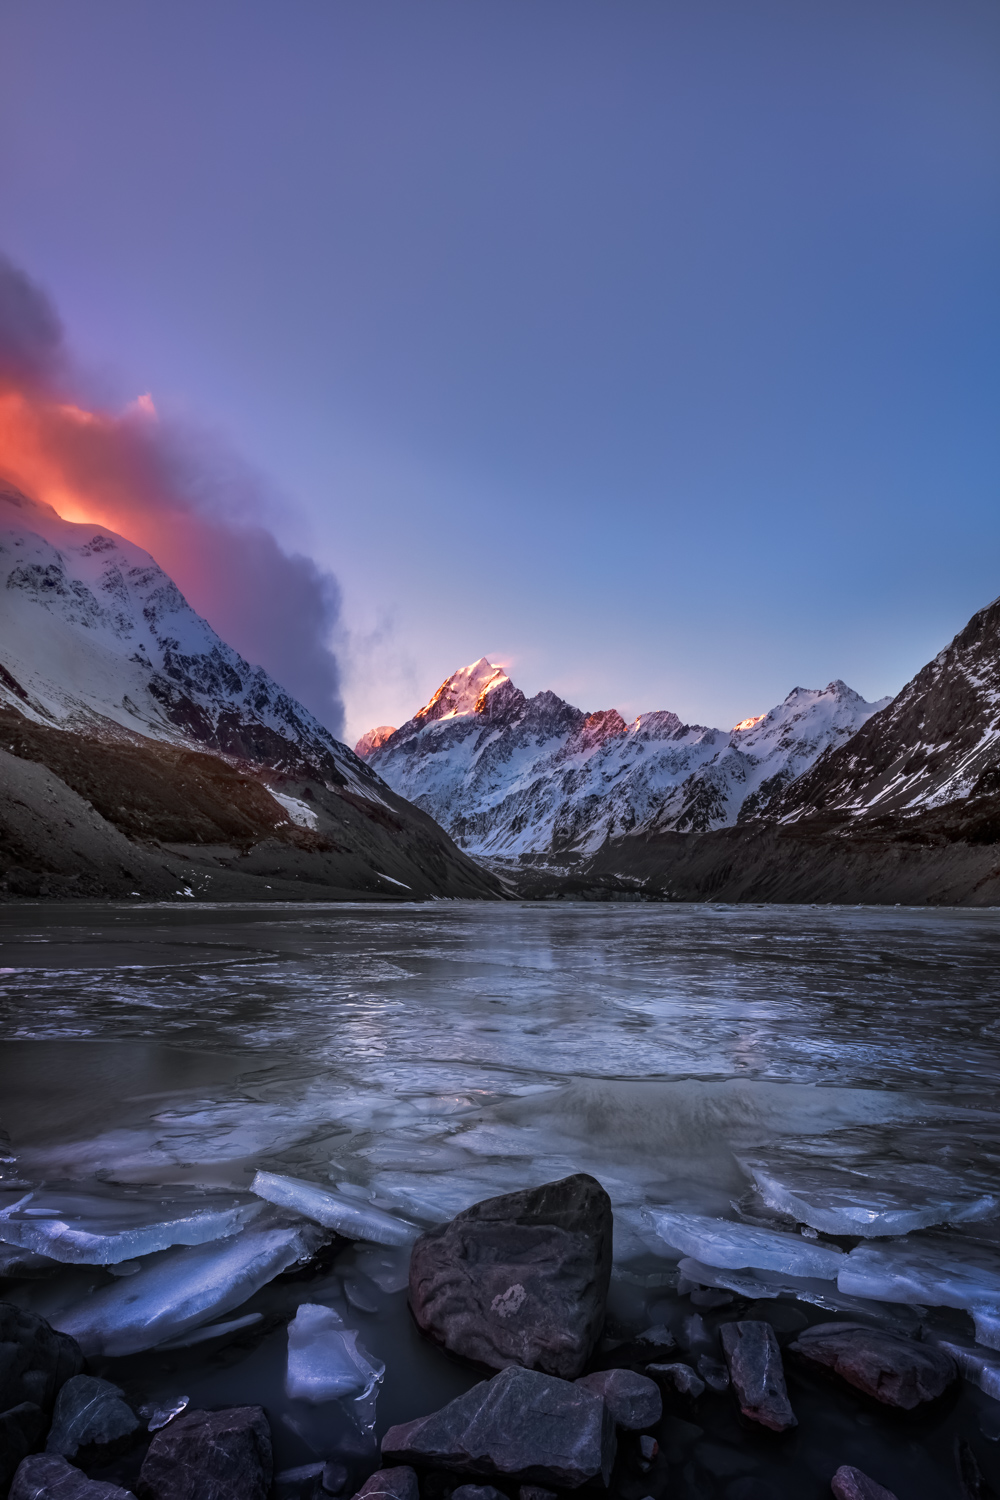 Landscape Photography Guided Tour - Mt Cook, Hooker Valley Track, New Zealand